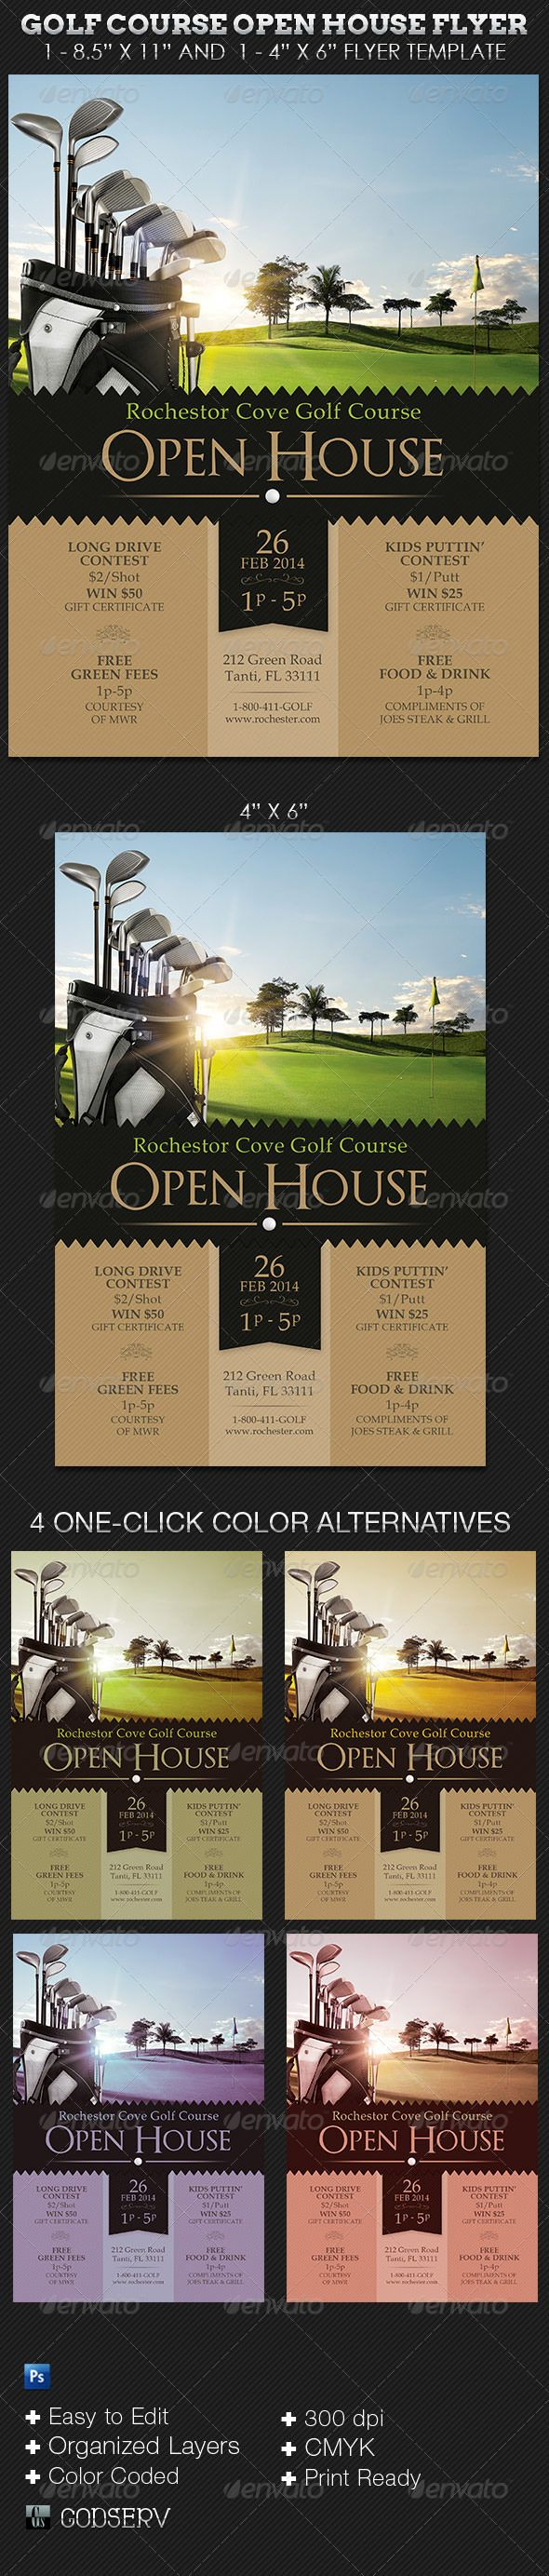 best images about flyer ideas templates events golf course open house flyer templates